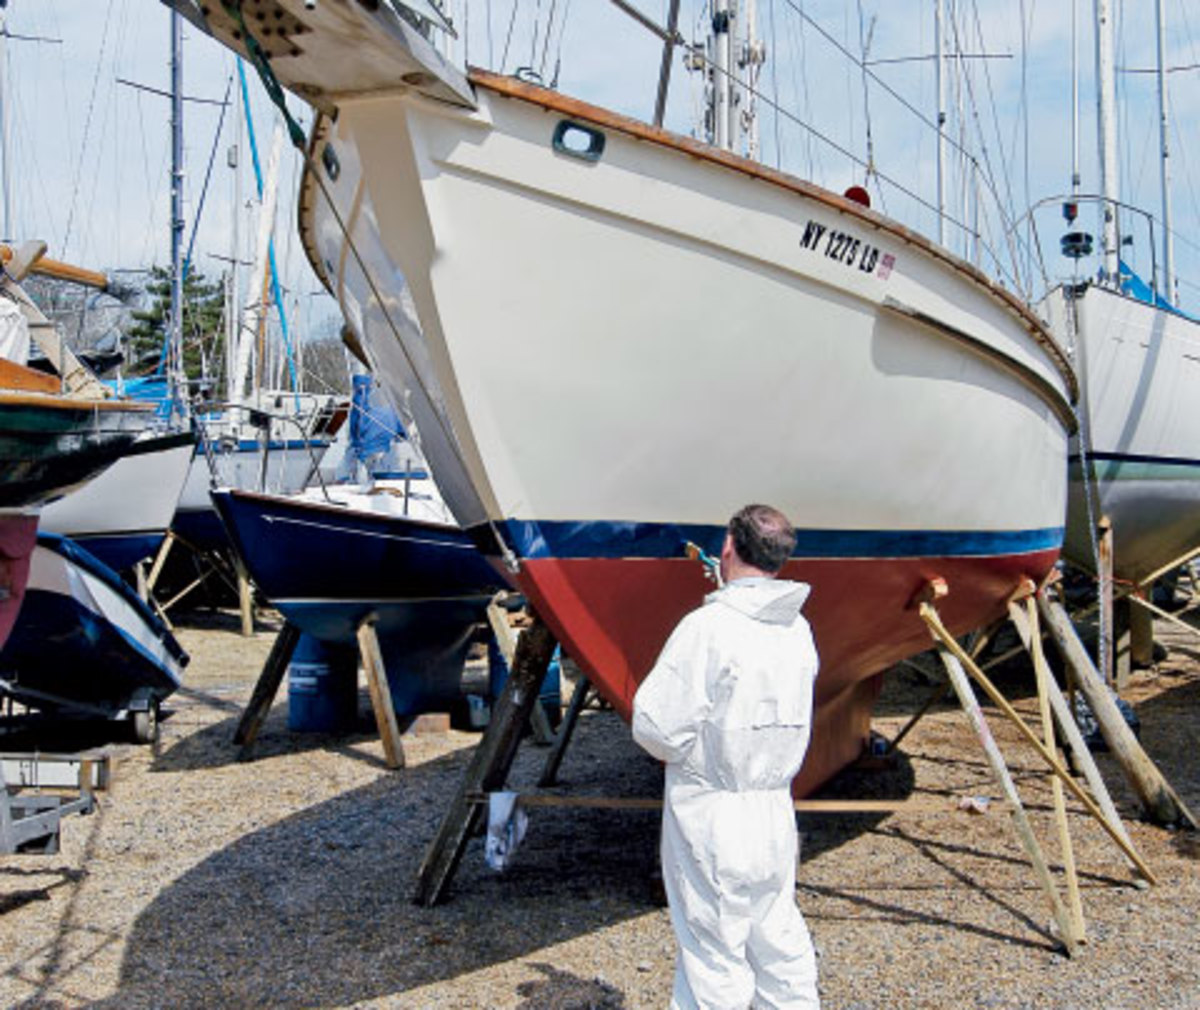 If the yard is painting your boat for you, it's best to specify a paint they use often